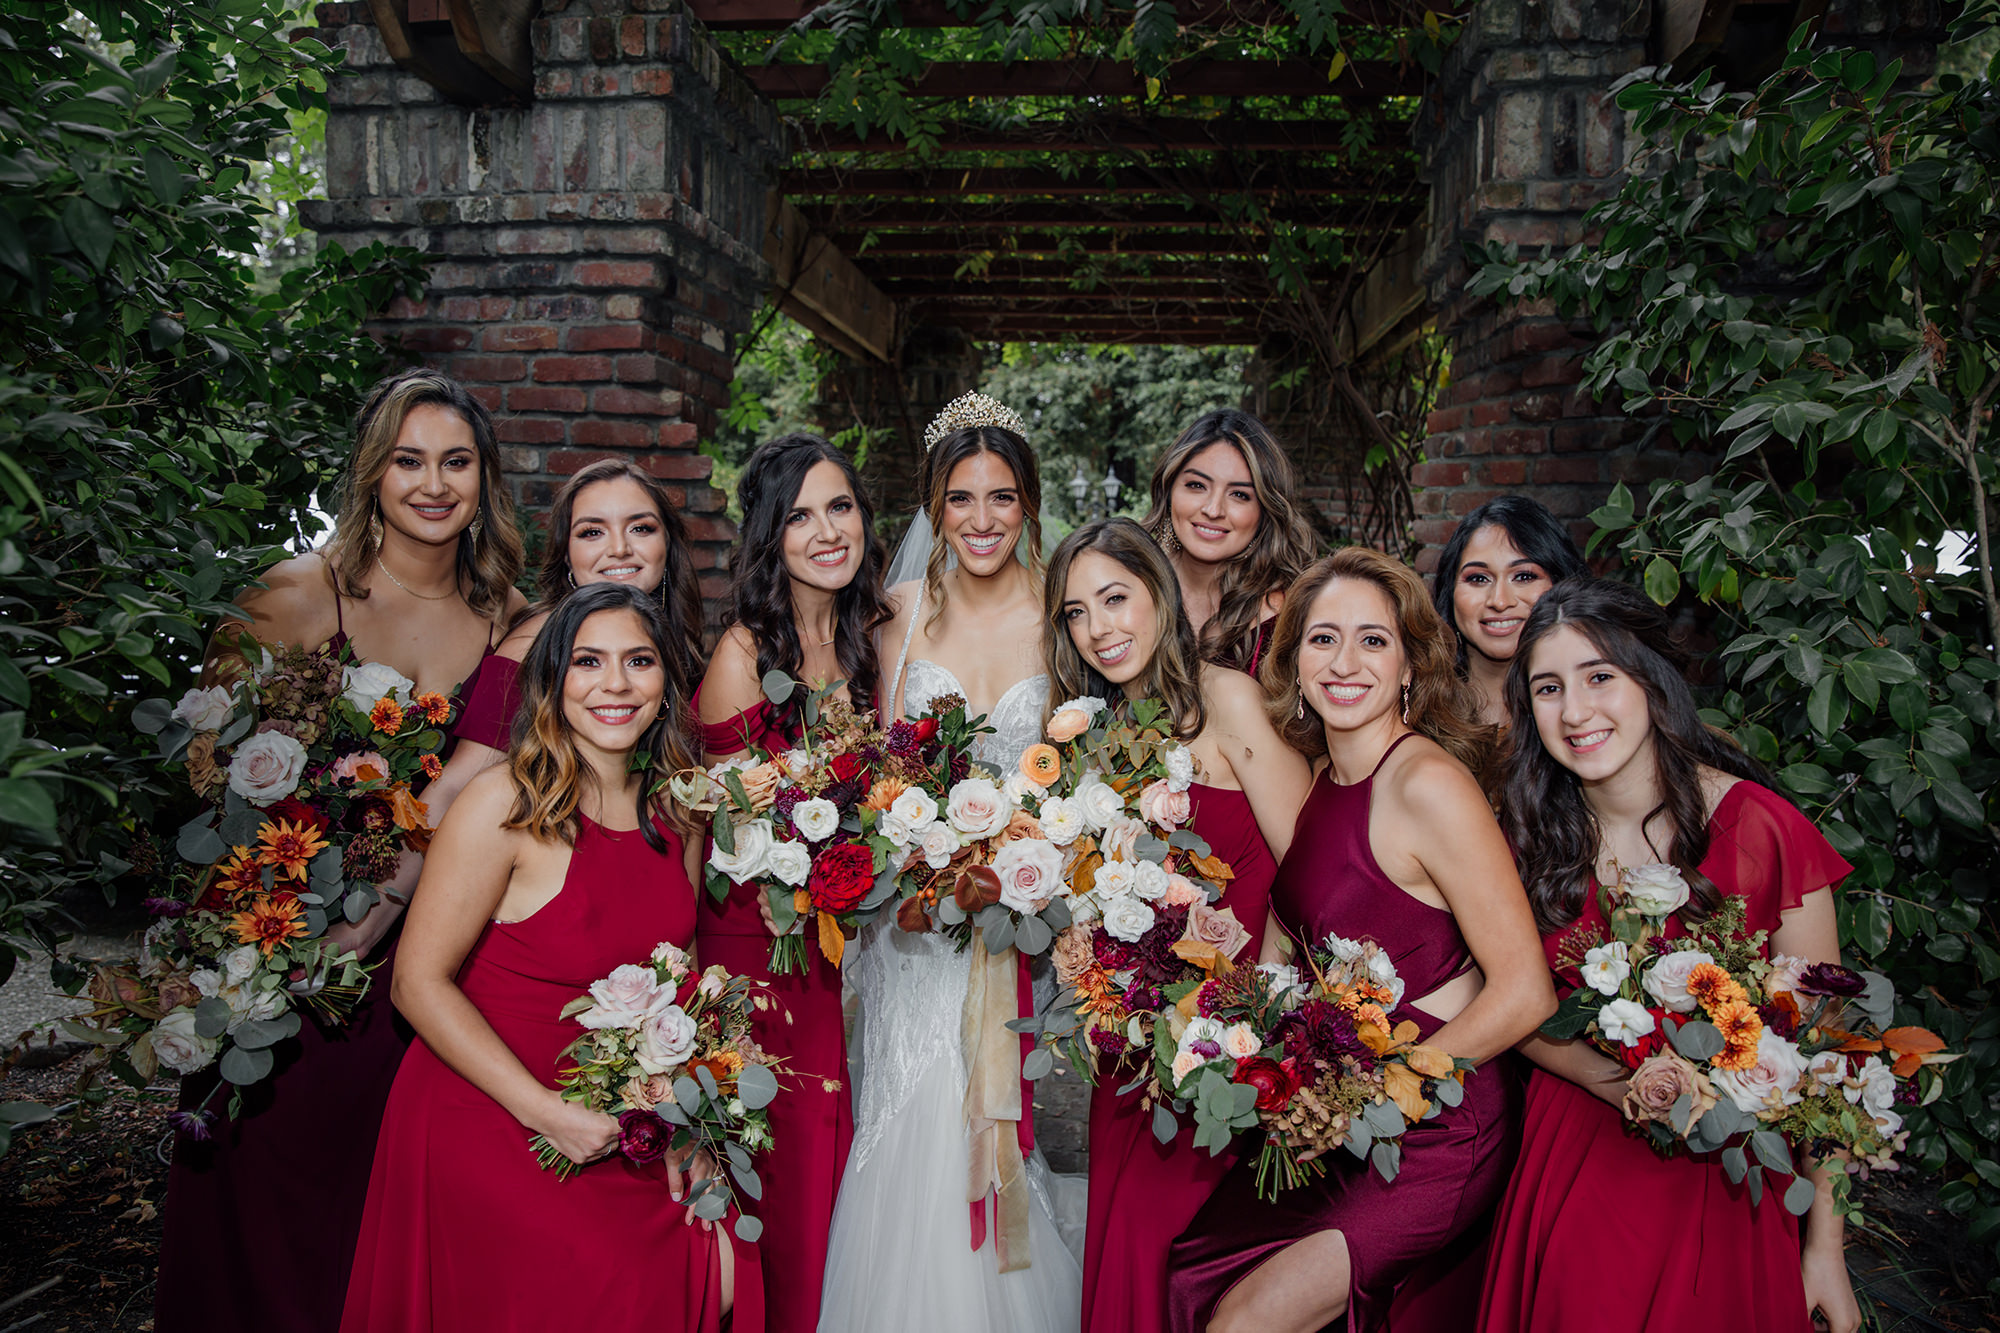 Wedding party at Harvest Inn in St Helena.